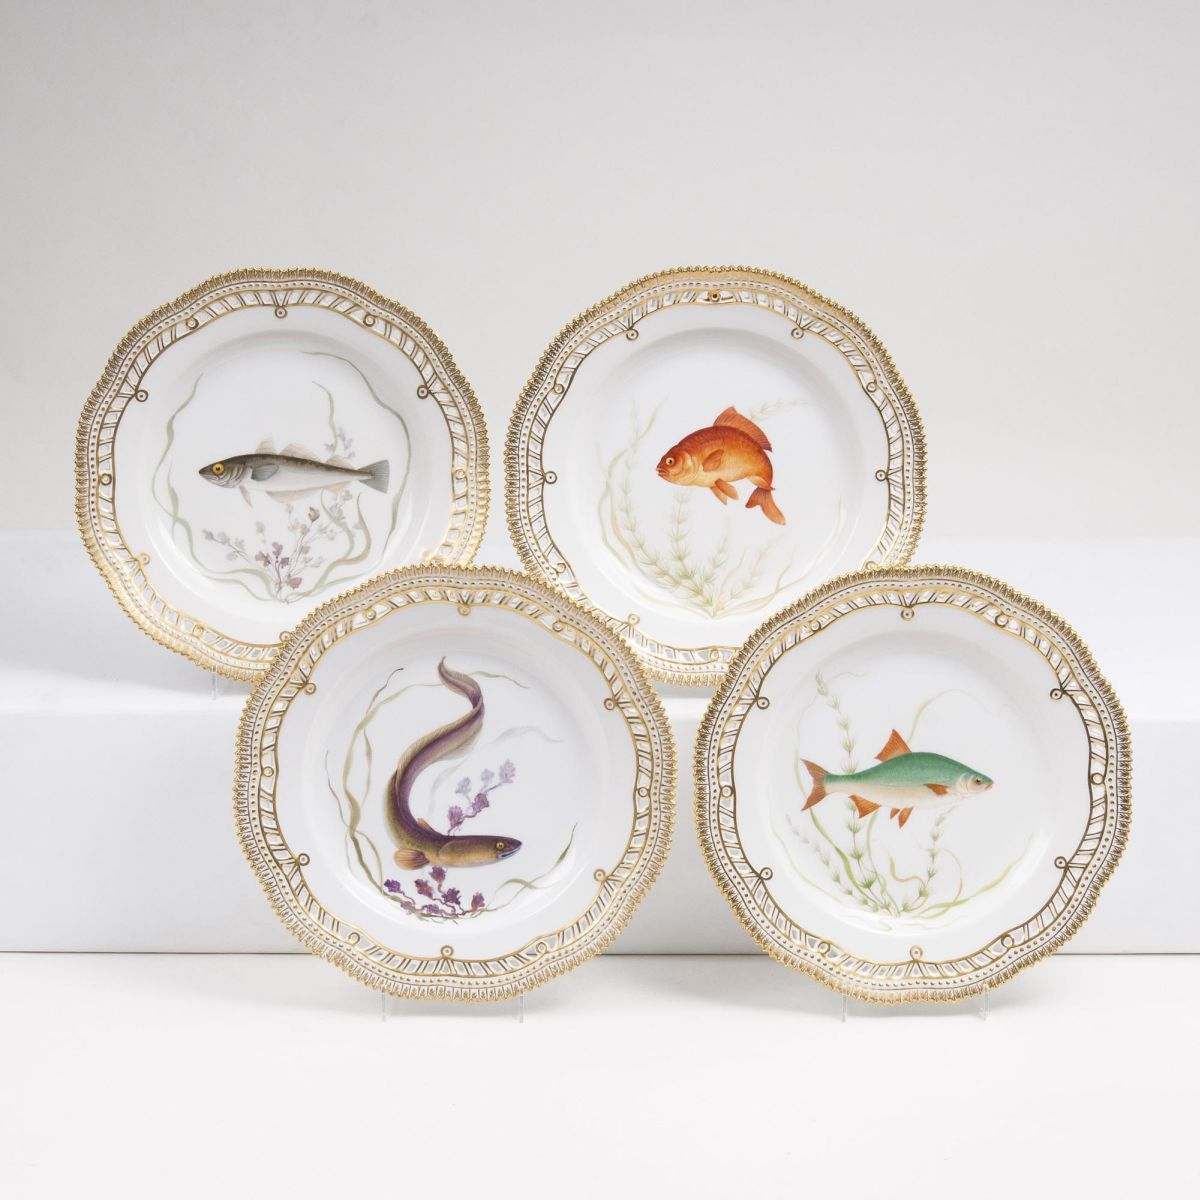 A Set of 4 reticulated Flora Danica Dinner Plates with Fish Specimen